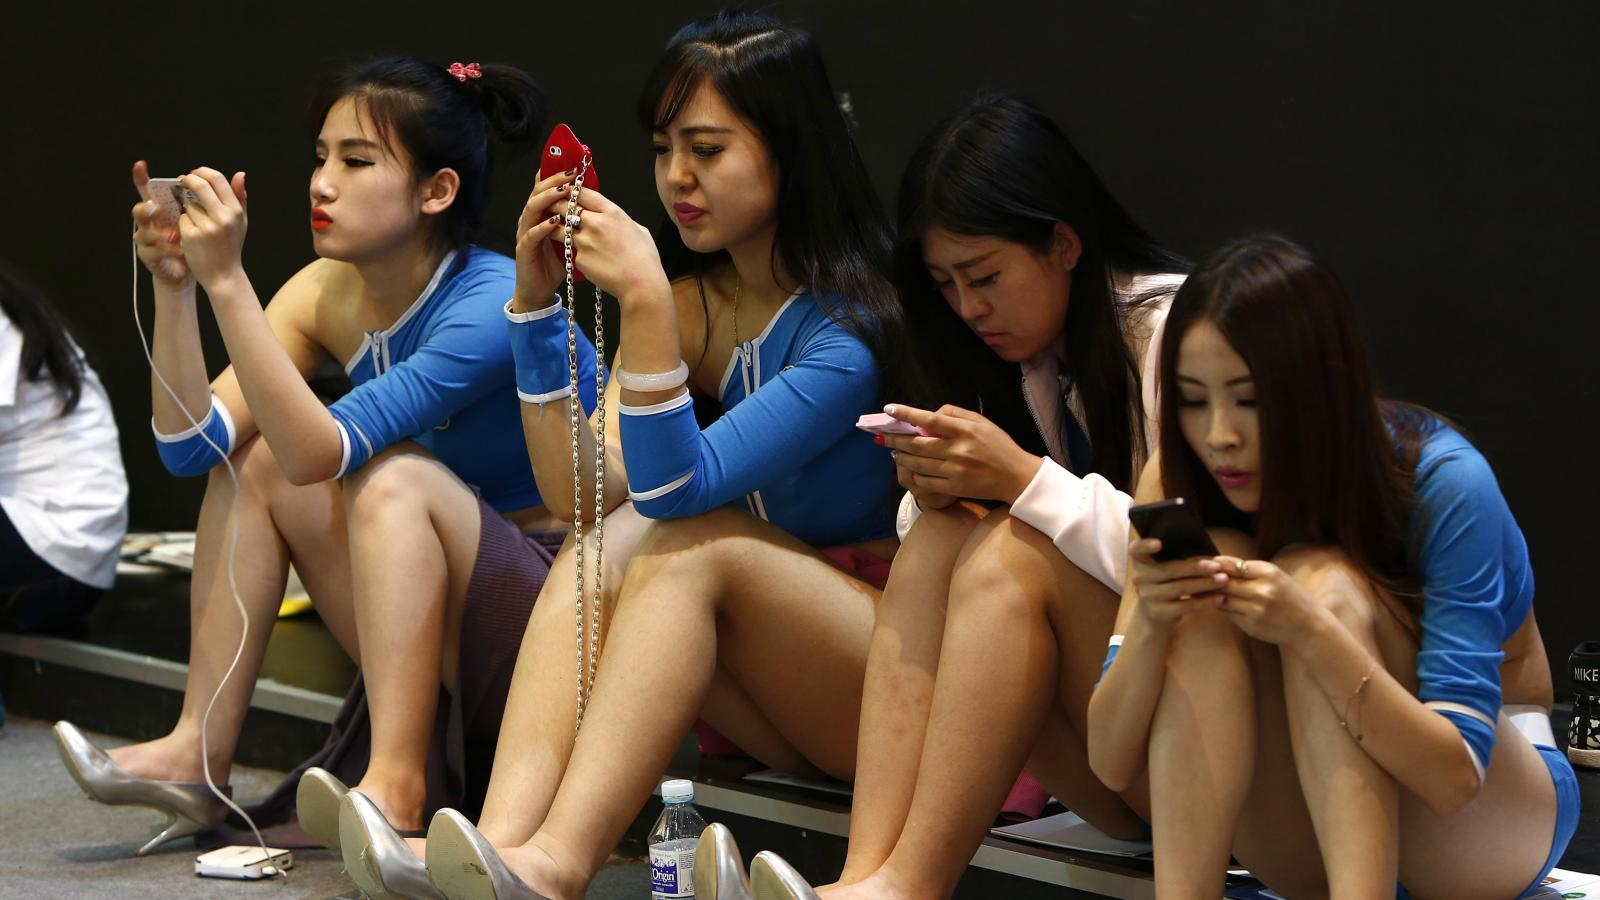 China's Tinder is trying to teach men looking for hookups better manners —  Quartz